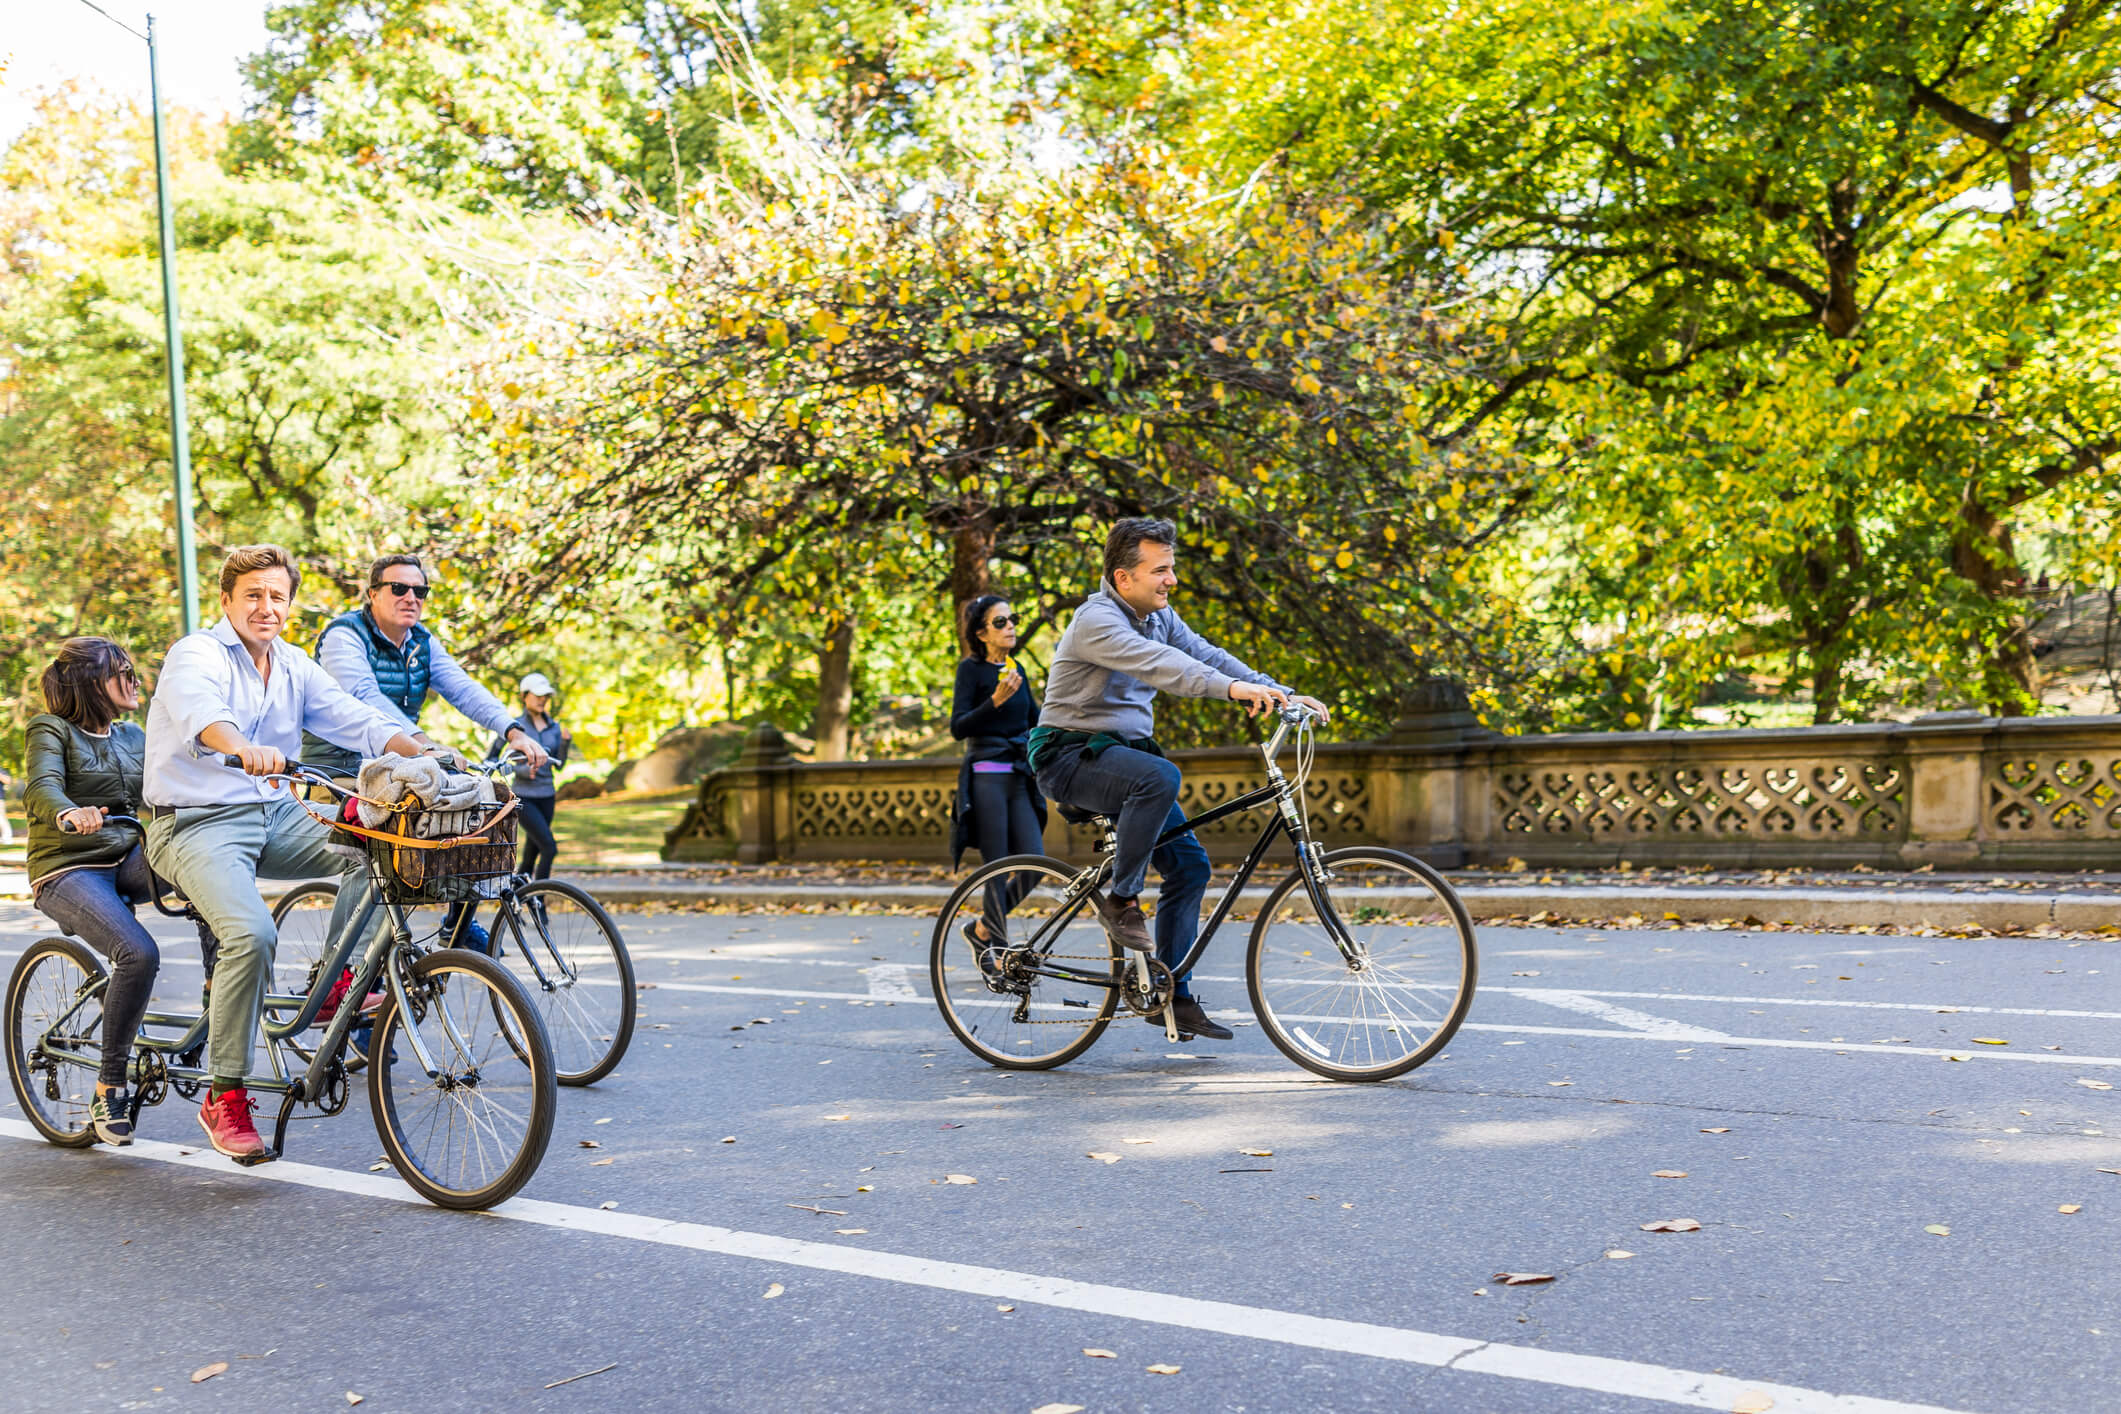 People cycling around Central Park